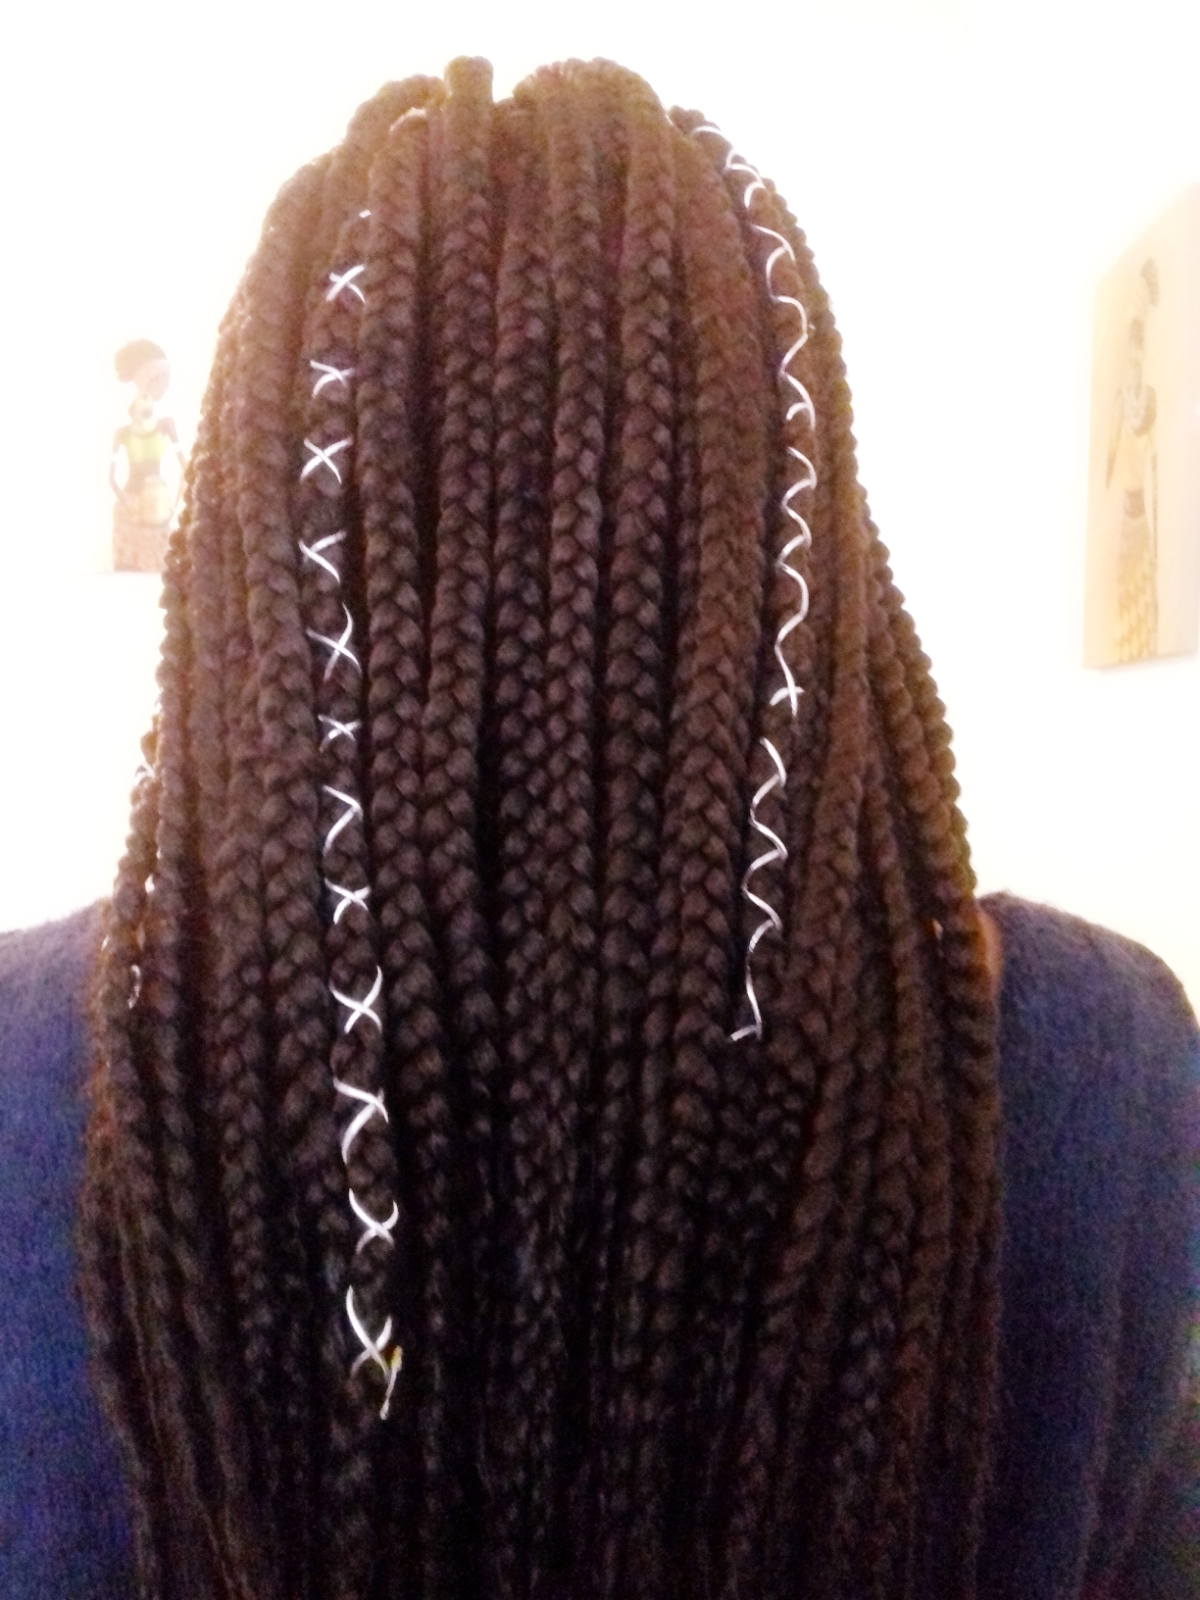 salon de coiffure afro tresse tresses box braids crochet braids vanilles tissages paris 75 77 78 91 92 93 94 95 LTYQXLTX